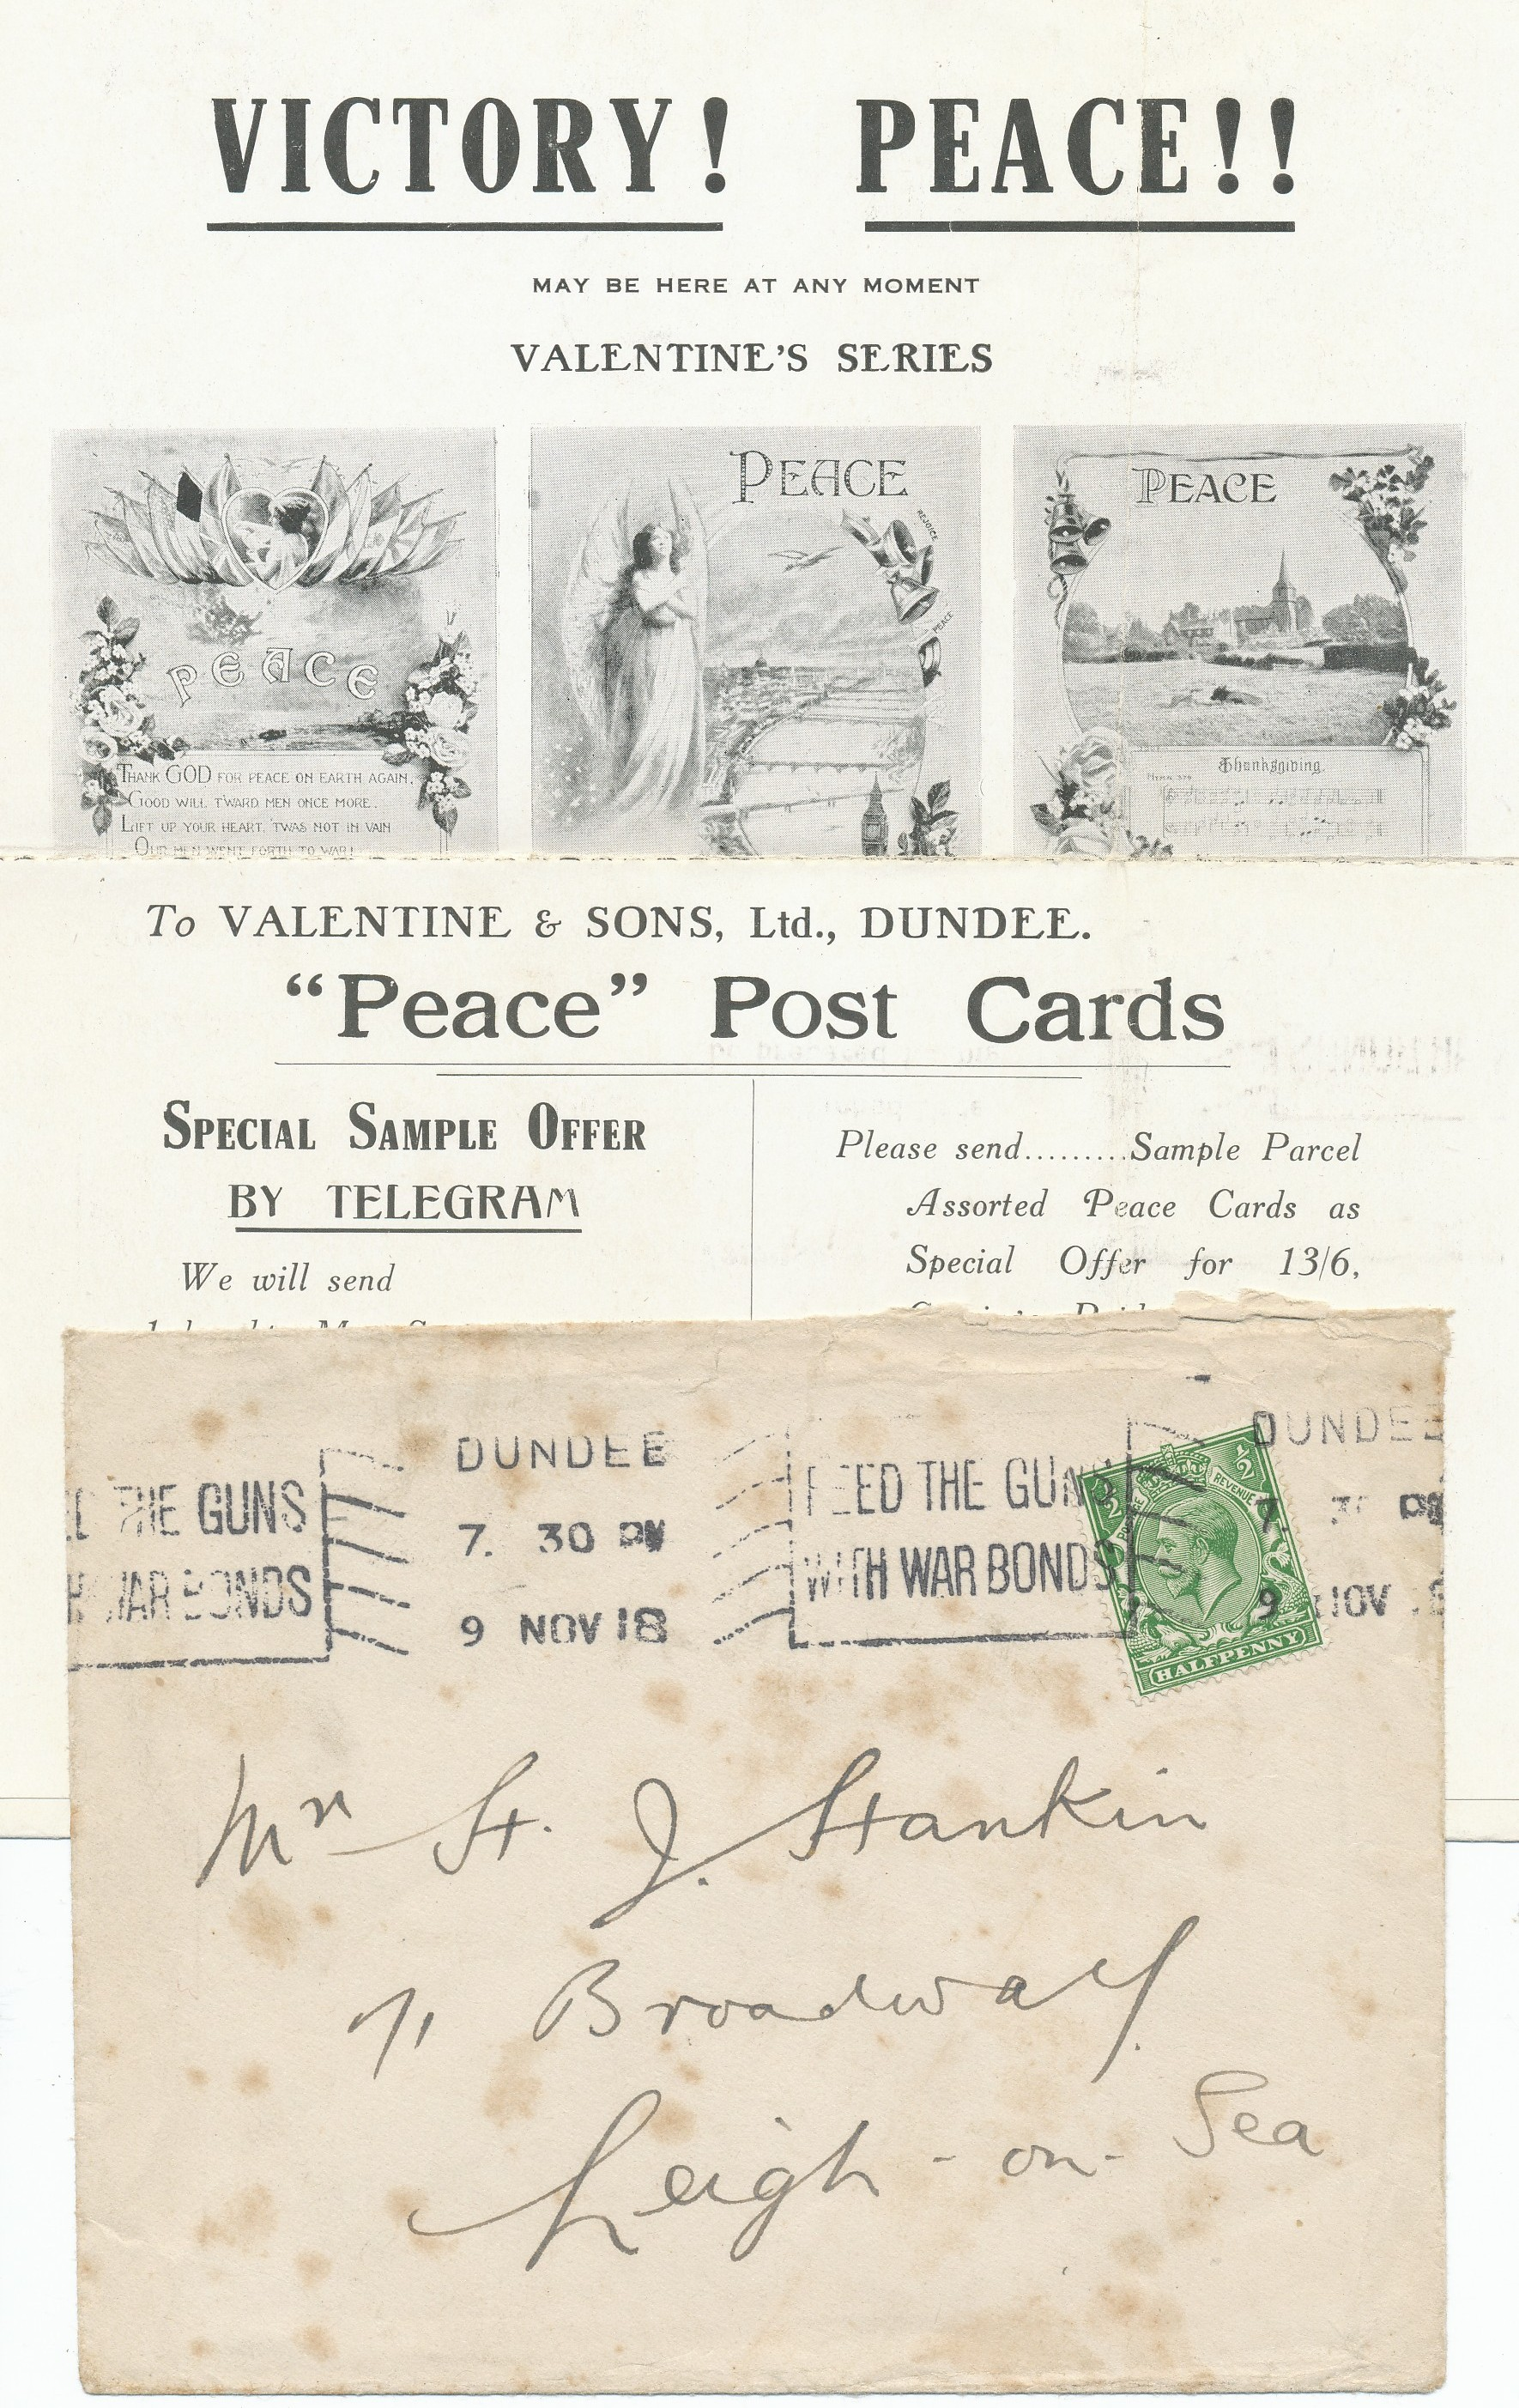 Valentine's peace postcards from 1918.